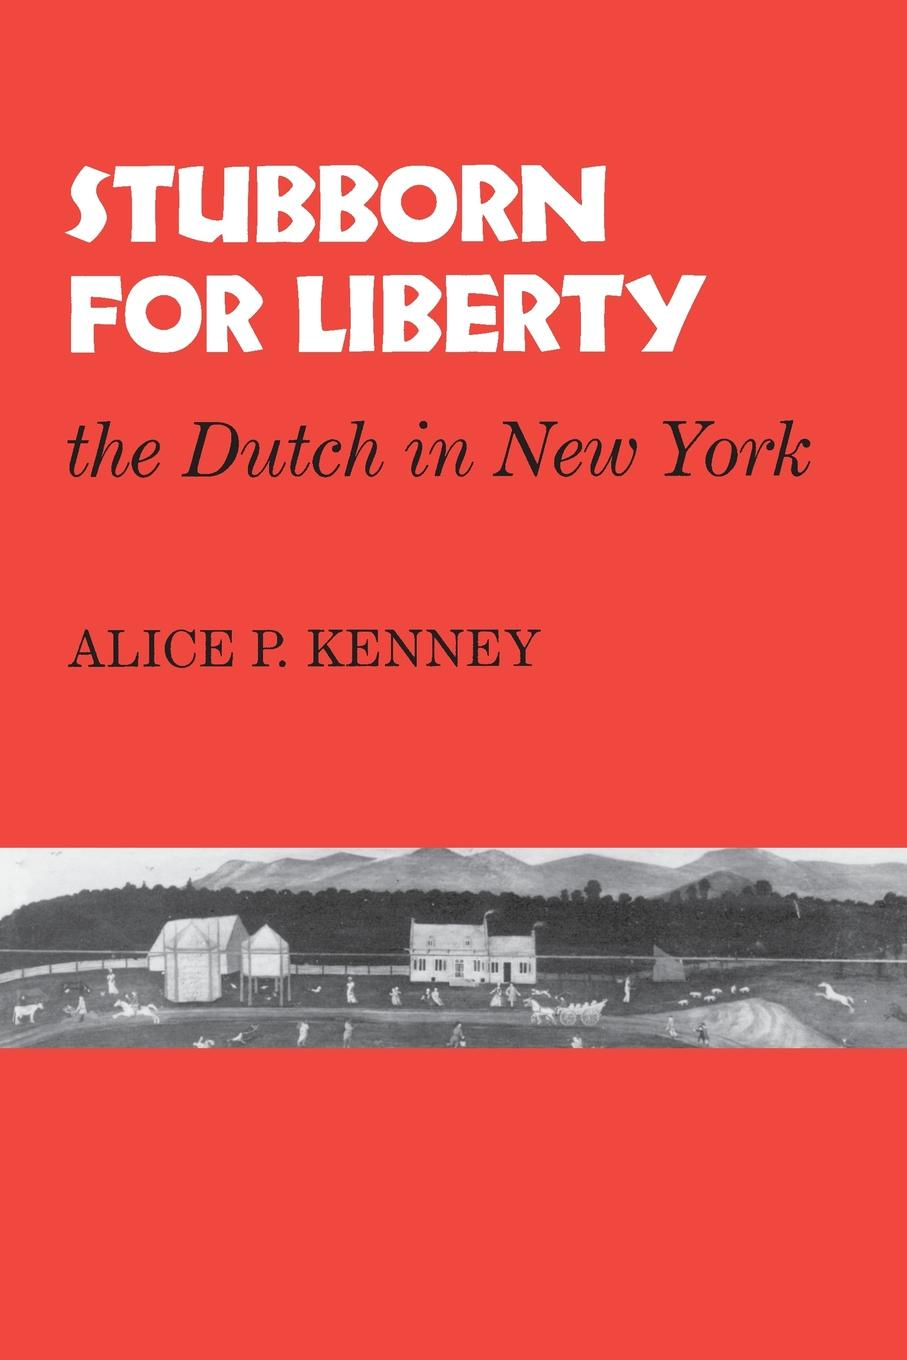 Alice P Kenny Stubborn for Liberty. The Dutch in New York ника дубровская what the dutch like a drawing book about dutch painting